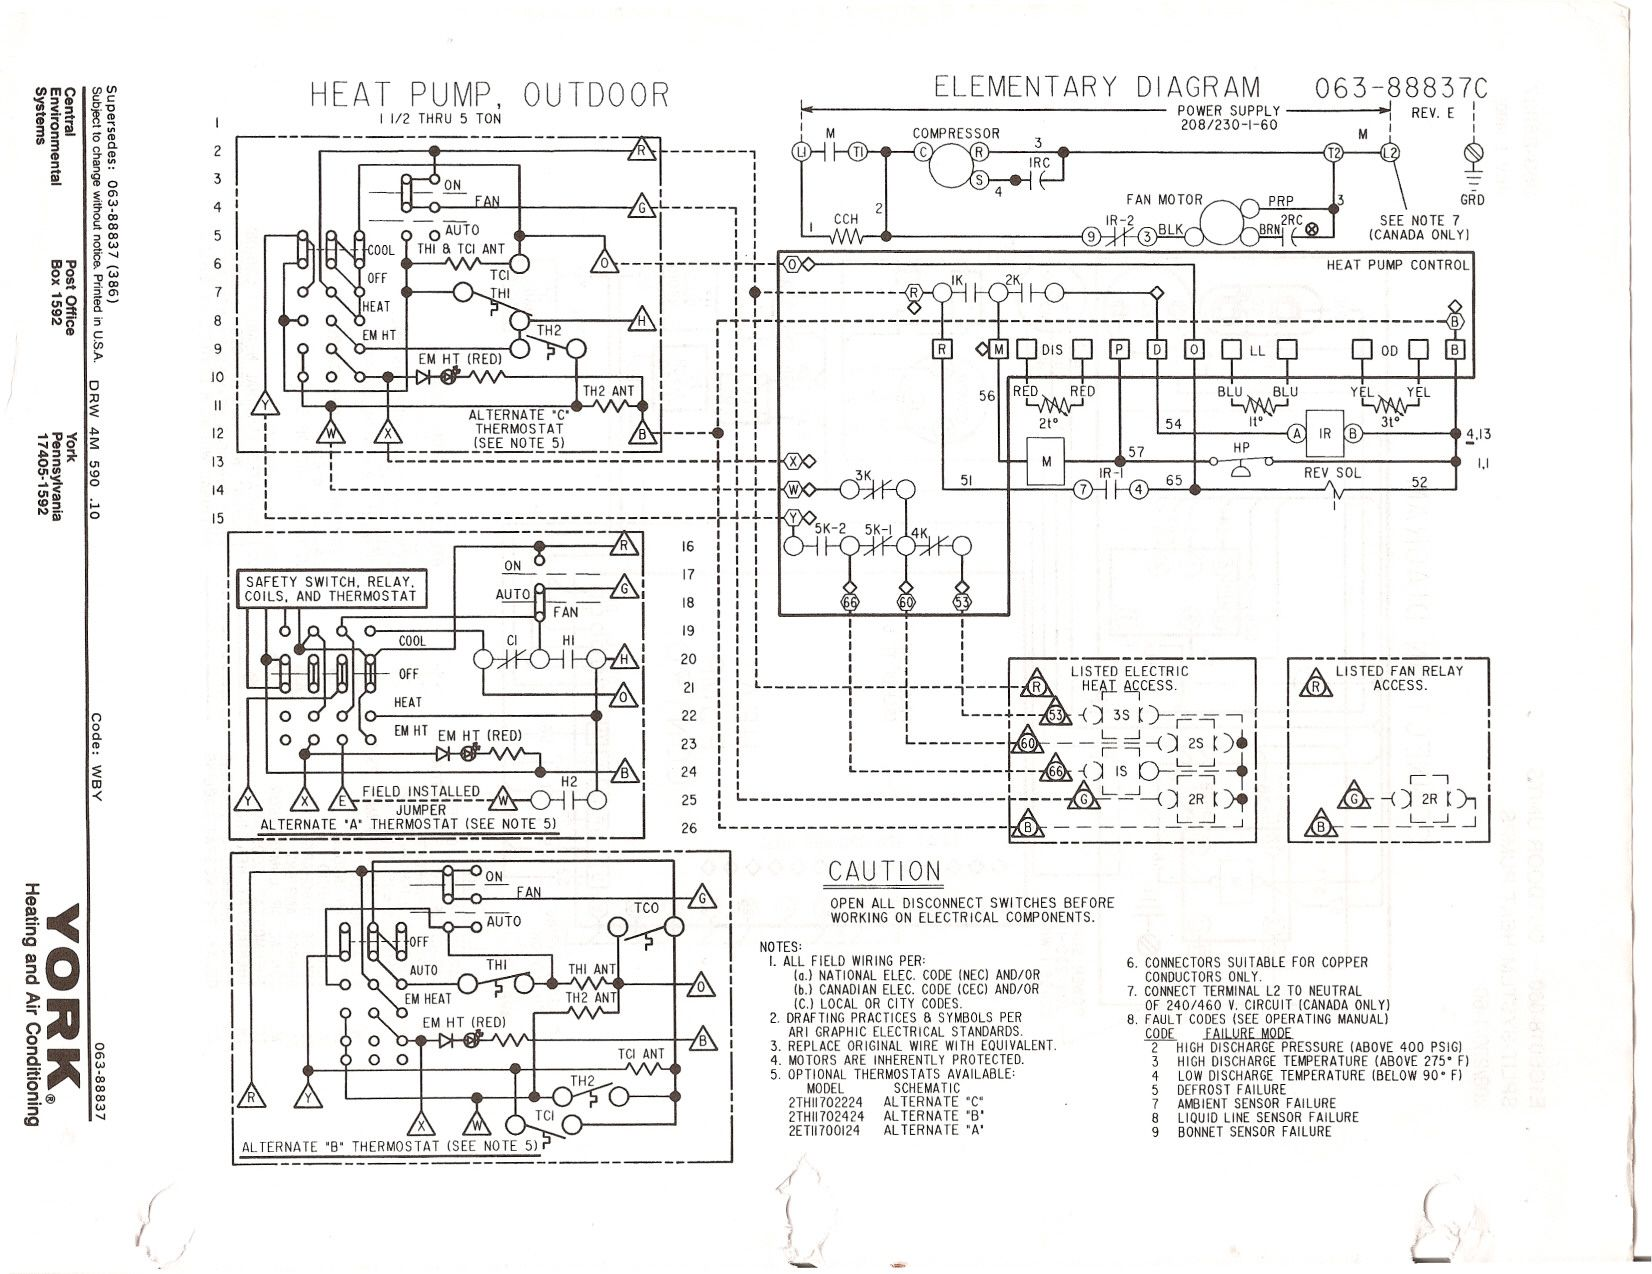 medium resolution of thermostat wiring troubleshooting choice image free troubleshooting examples circuit diagram humidifier garage heater